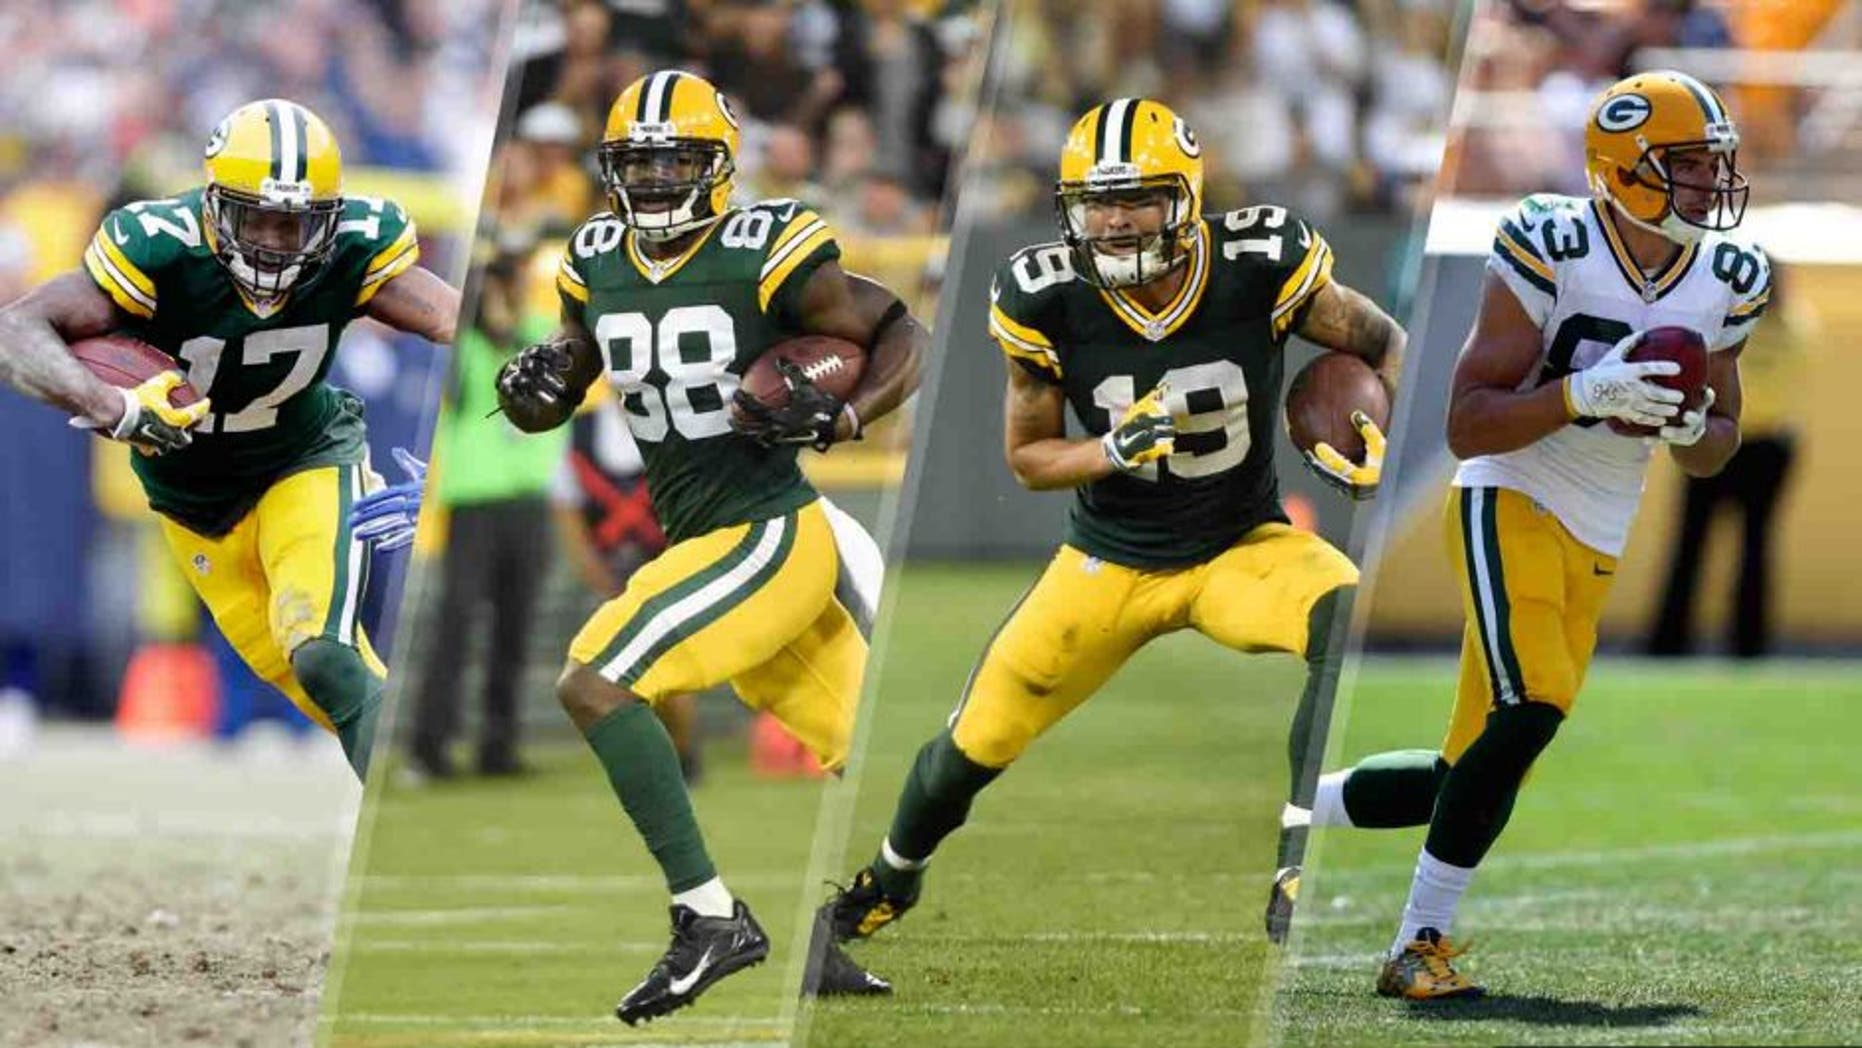 Four Green Bay Packers wide receivers who could see more action after preseason injuries to Jordy Nelson and Randall Cobb: from left to right, Davante Adams, Ty Montgomery, Myles White and Jeff Janis.